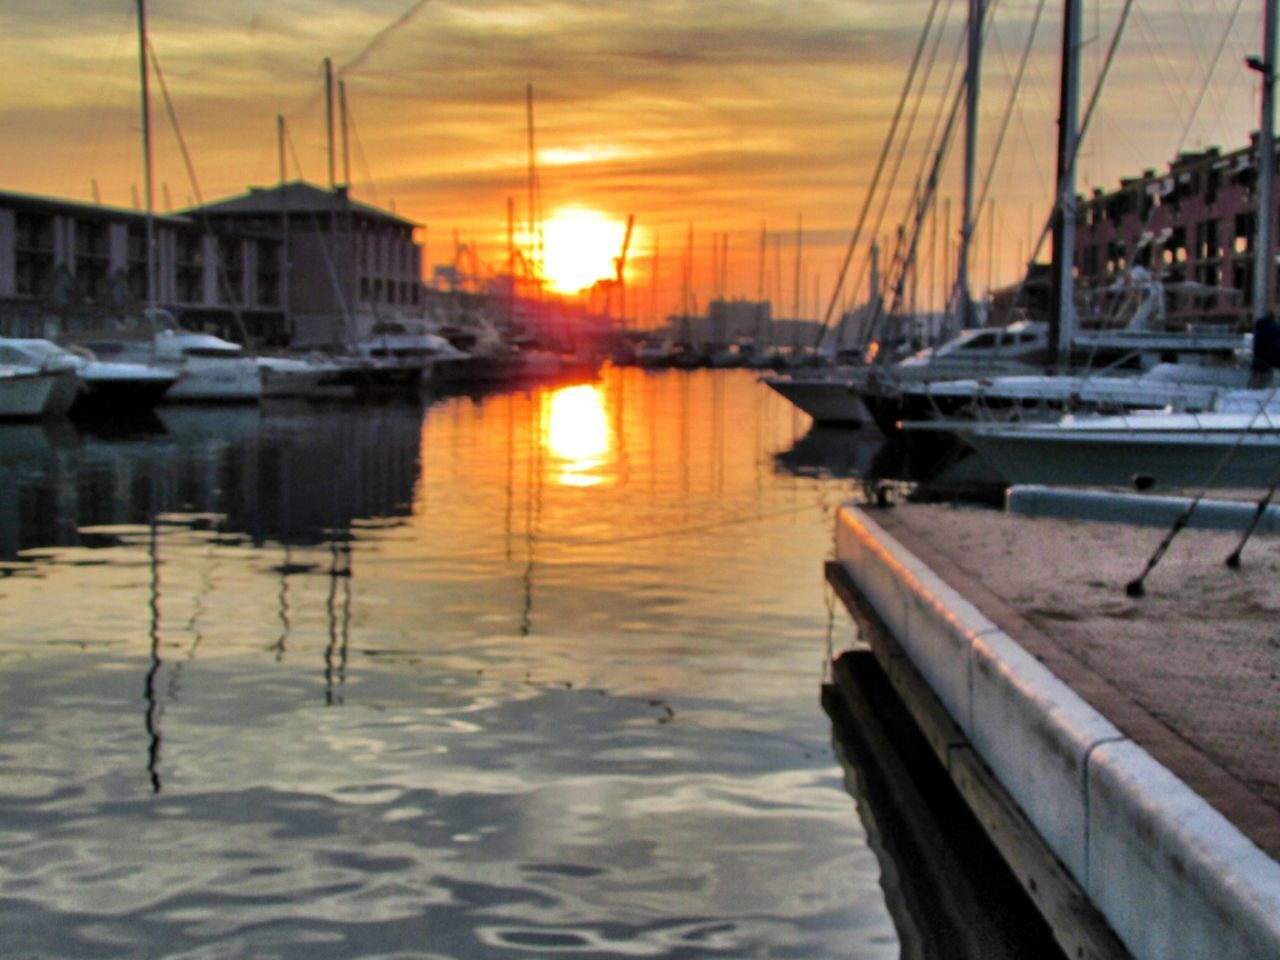 sunset, transportation, nautical vessel, water, mode of transport, boat, orange color, reflection, sky, sun, harbor, river, mast, cloud - sky, sailboat, nature, beauty in nature, outdoors, city, scenics, no people, tranquility, cloud, canal, rippled, idyllic, tranquil scene